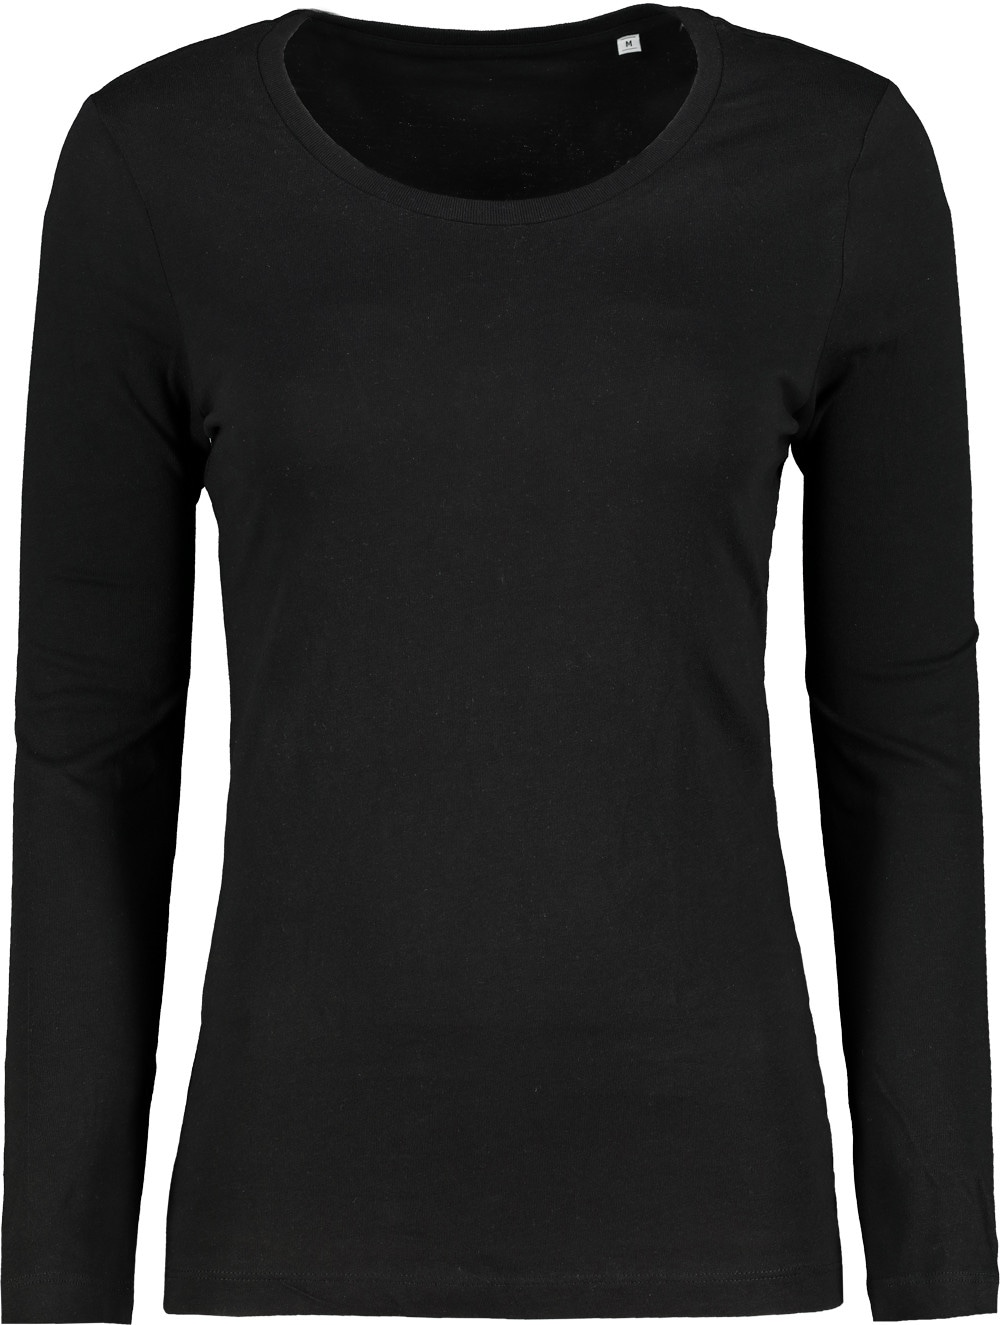 Women's T-shirt B&C BASIC